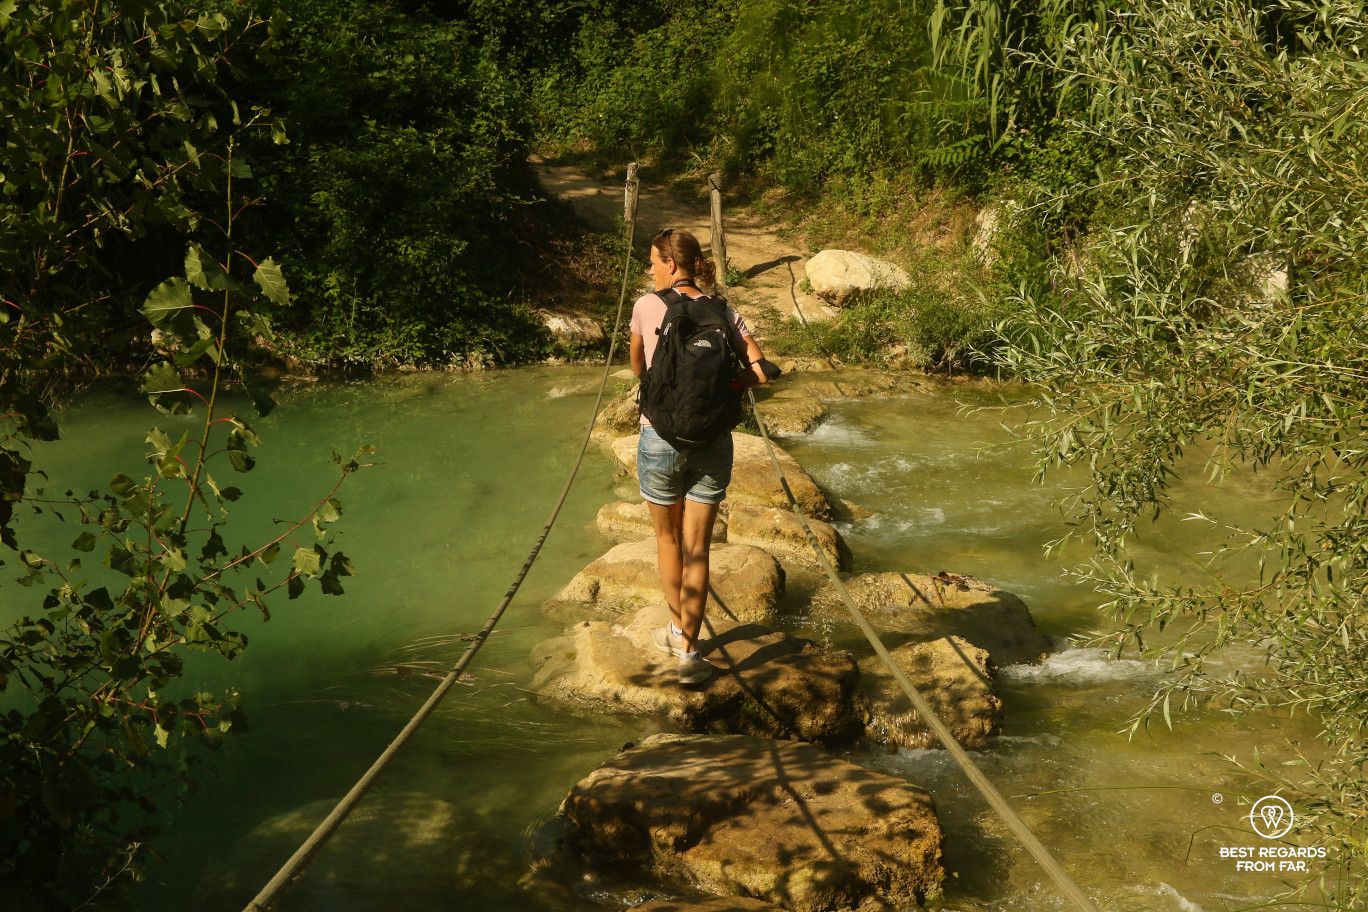 Hiker crossing a foot bridge on the Elsa River, Tuscany, Italy